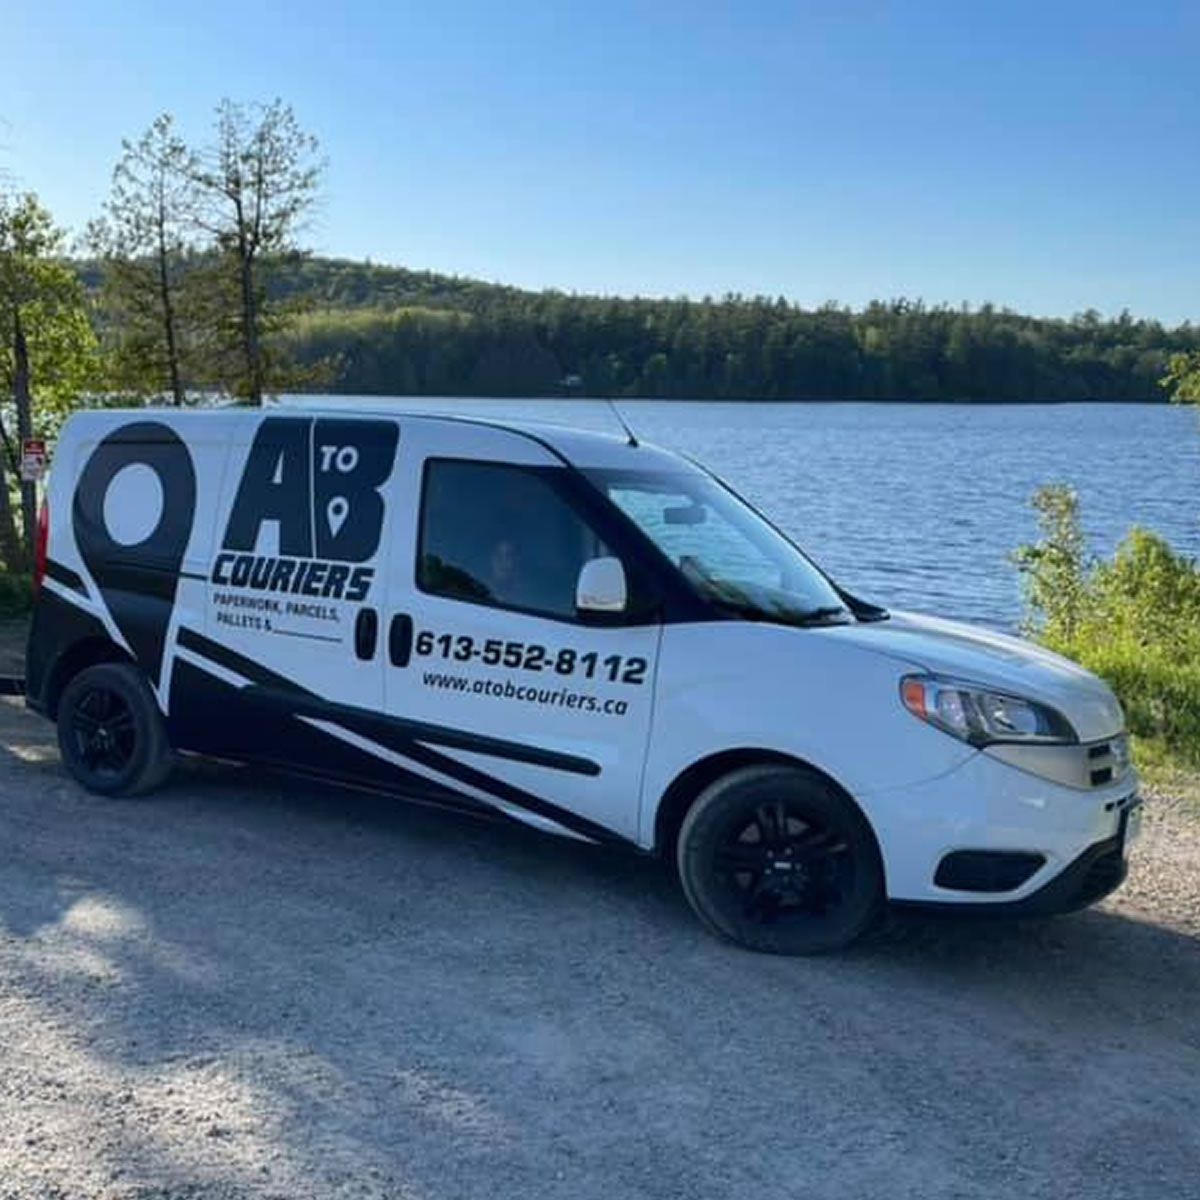 The A to B Couriers delivery van by a lake